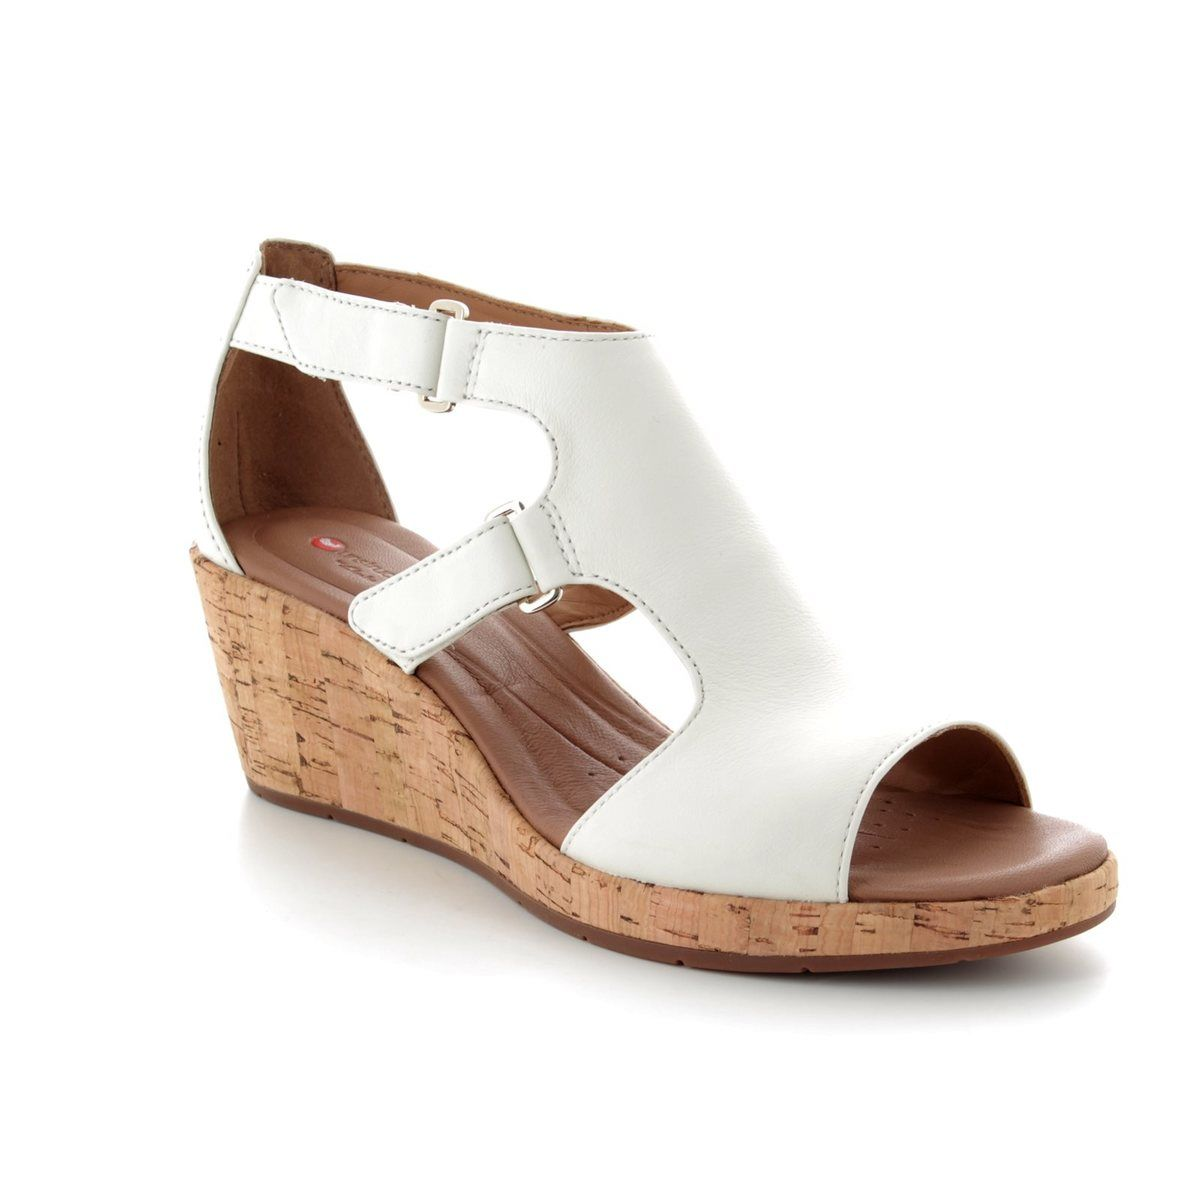 7408f50fc2f Clarks Wedge Sandals - White - 3326 54D UN PLAZA STRAP